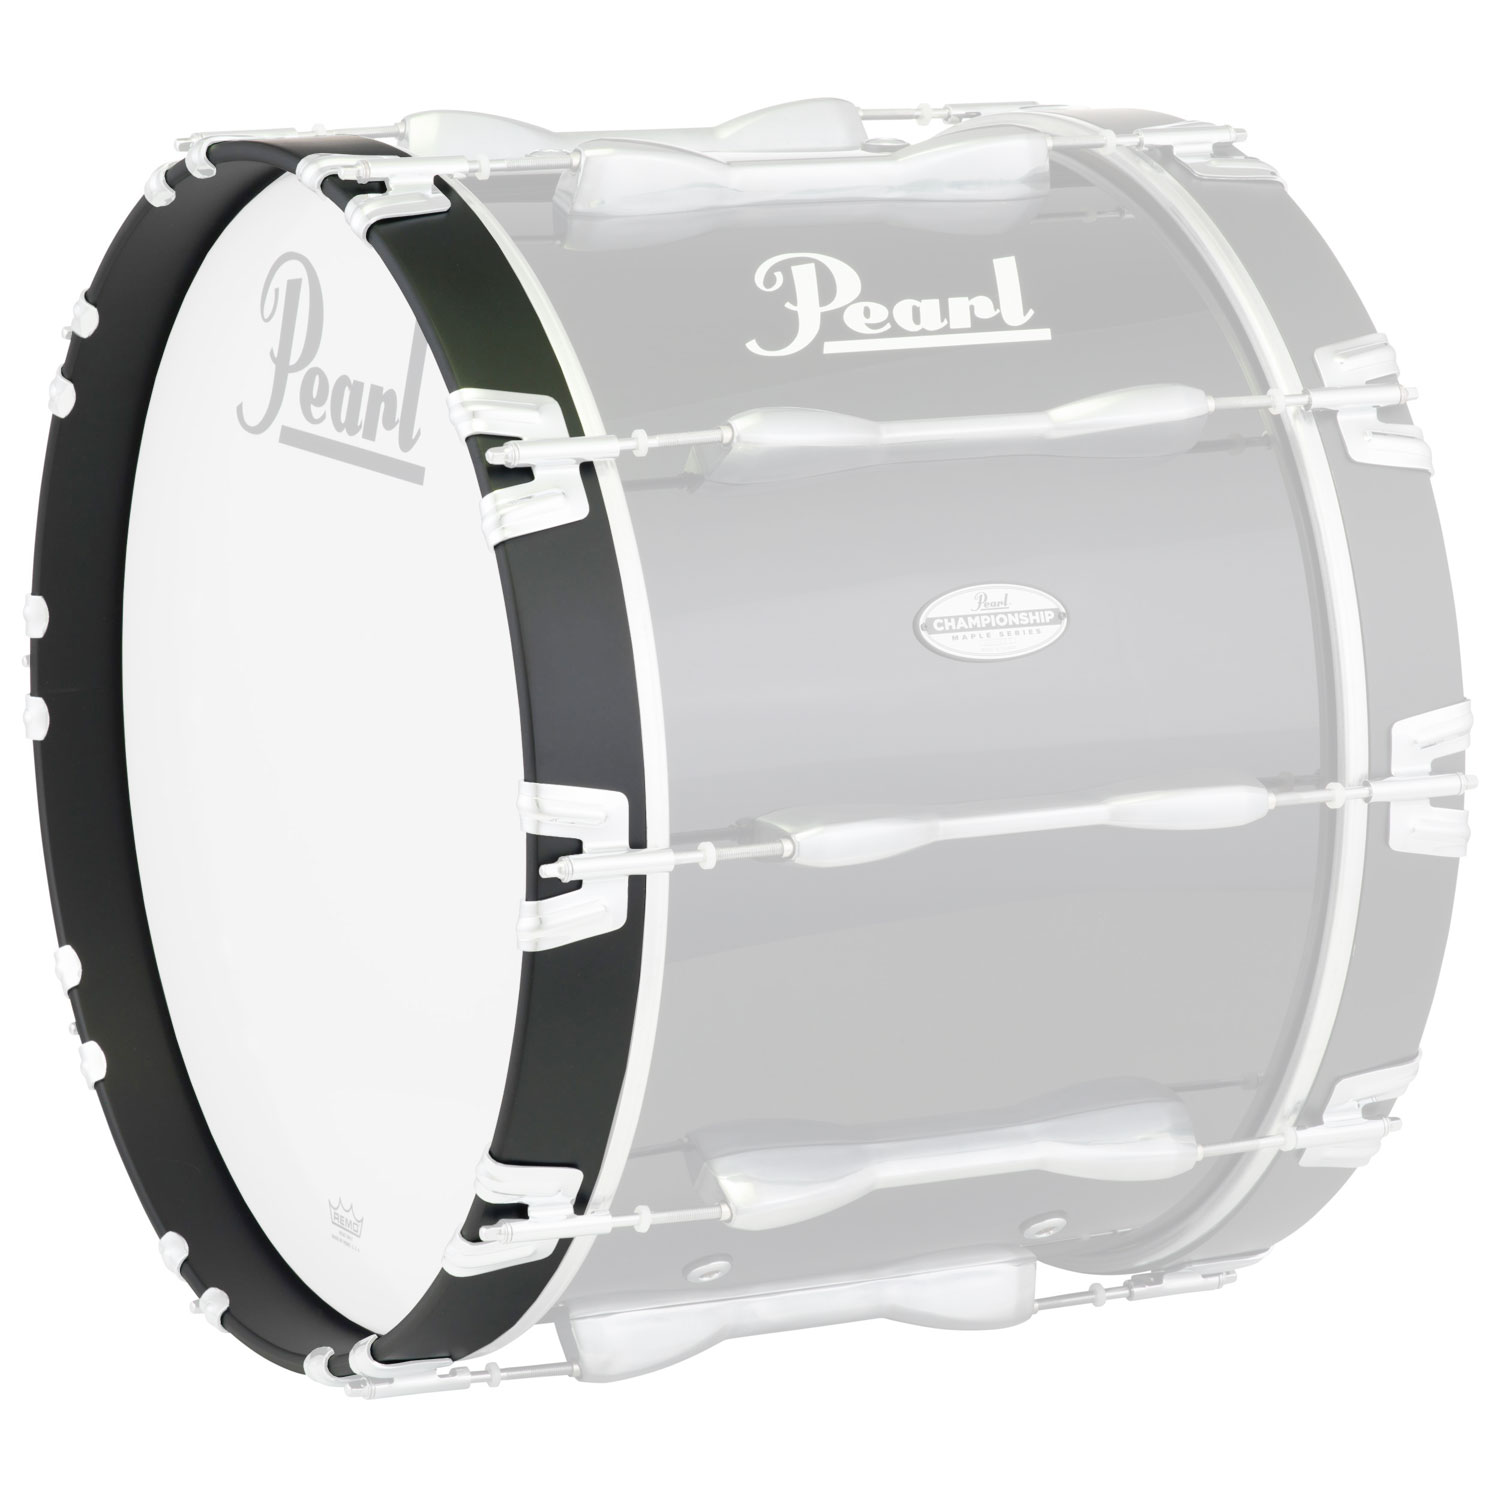 "Pearl 20"" Championship Bass Hoop, Gloss Black, 2"" Wide"